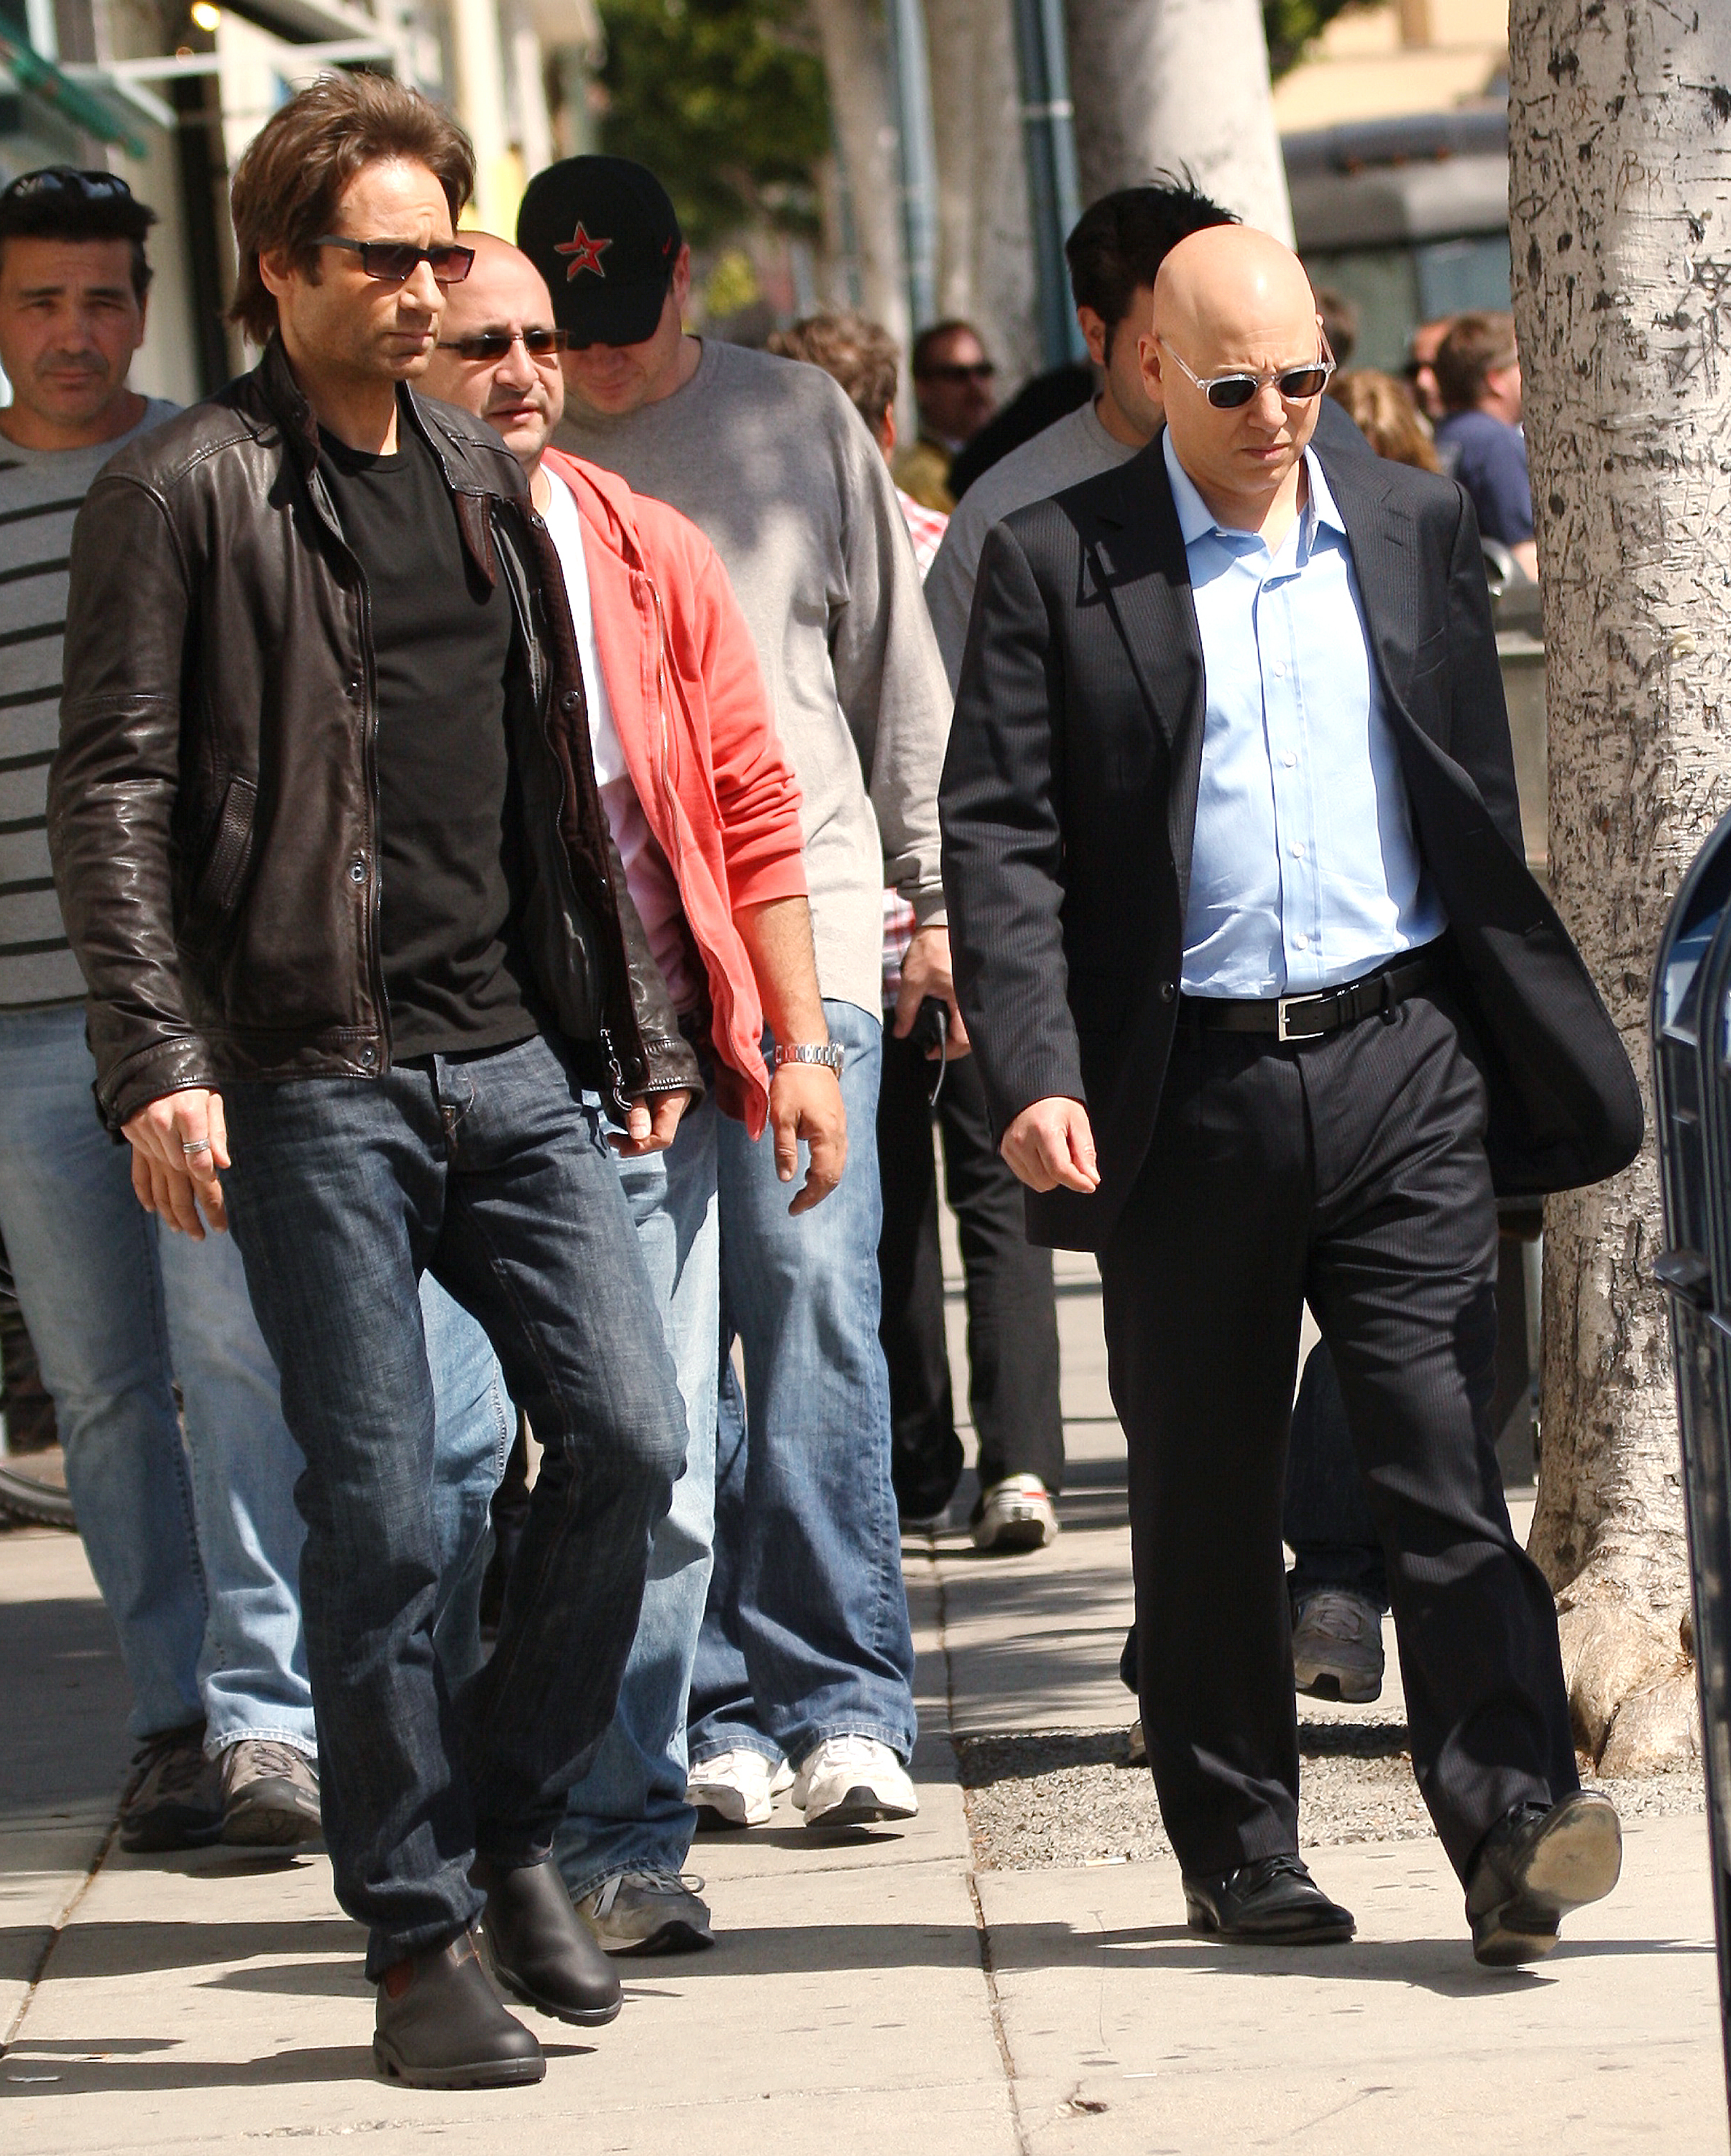 Photo of Evan Handler & his friend actor  David Duchovny - Cast of Californication